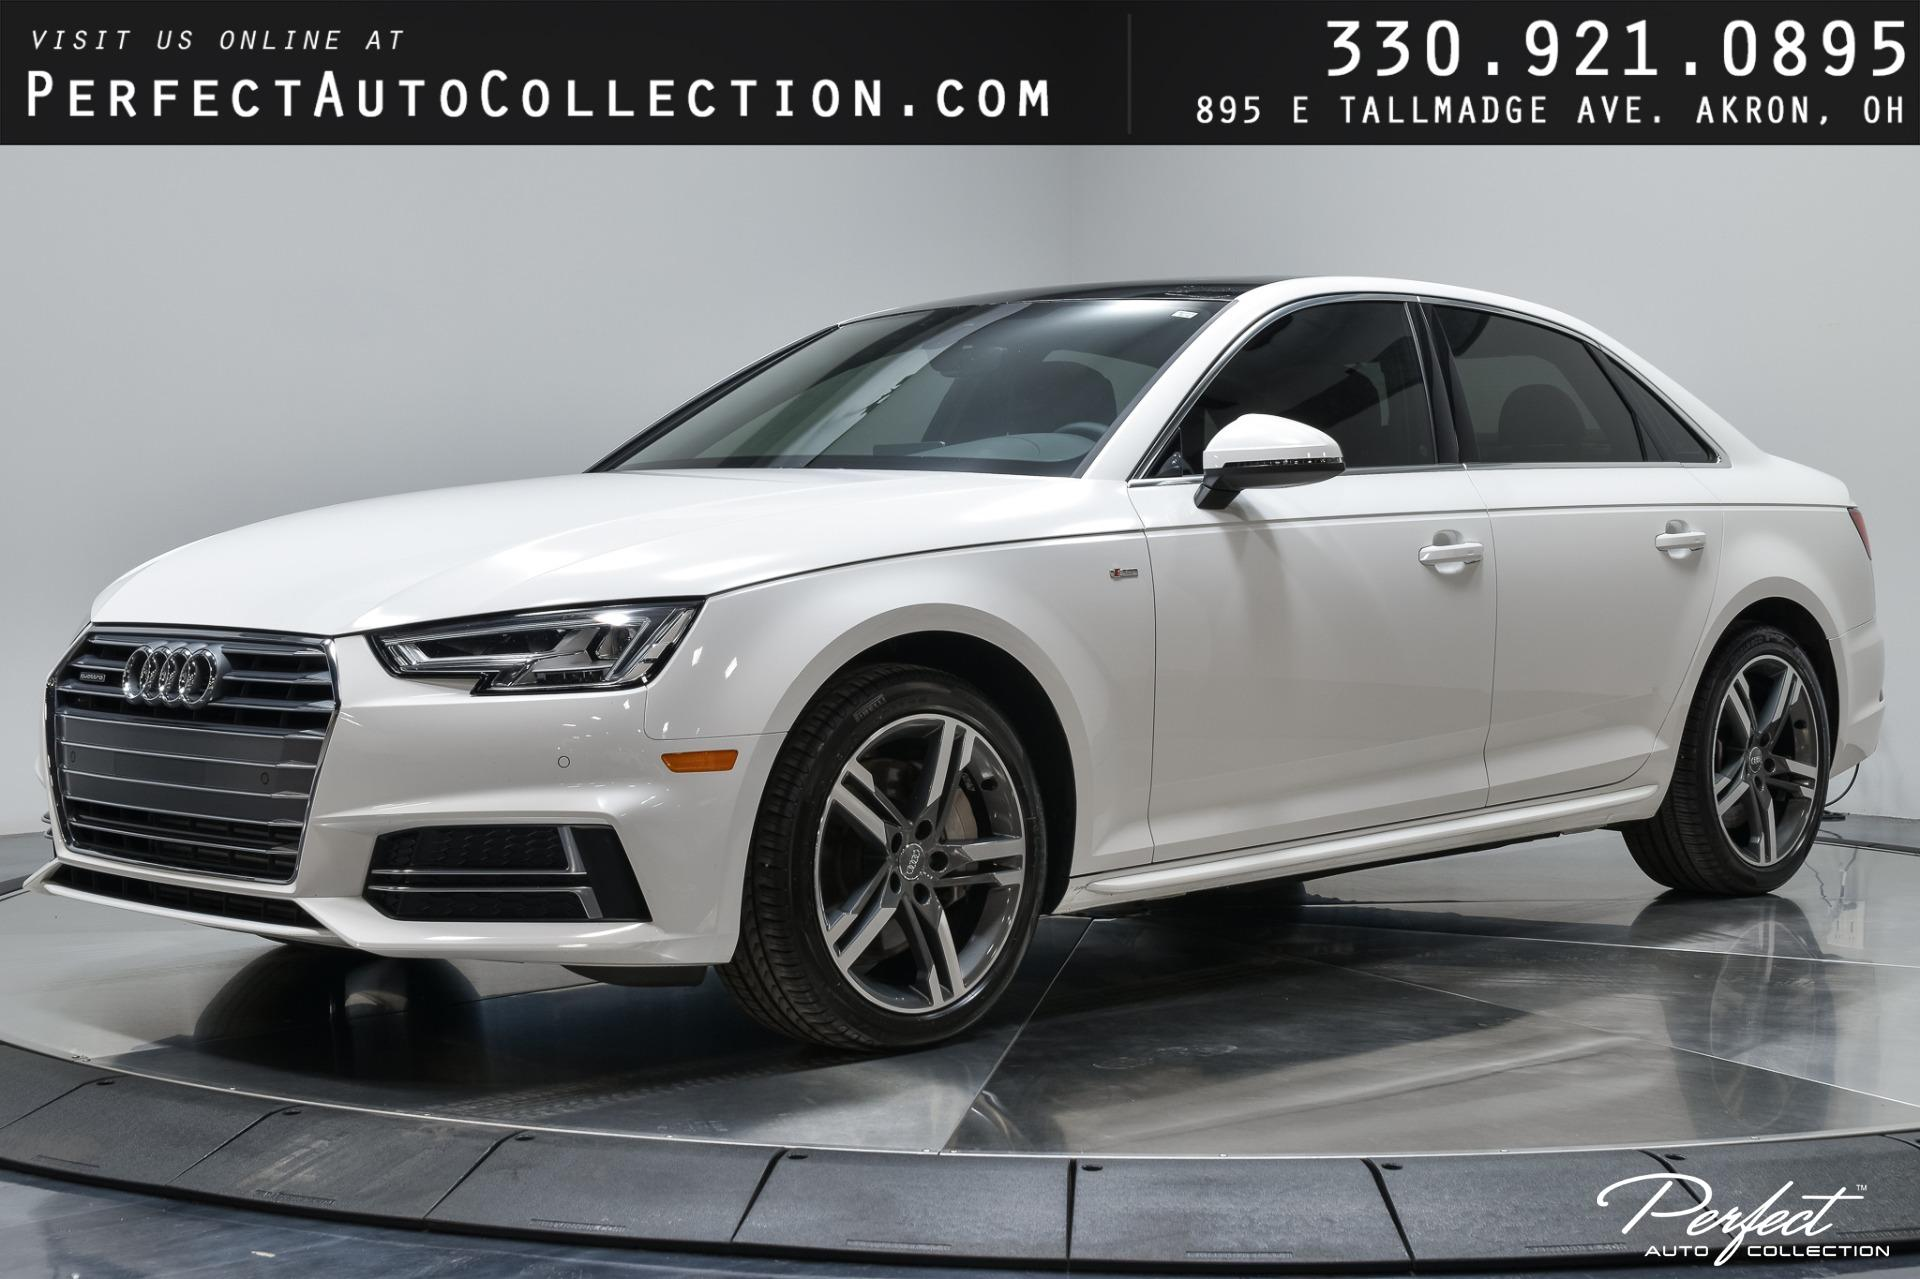 Used 2018 Audi A4 2.0T quattro Premium Plus for sale $31,495 at Perfect Auto Collection in Akron OH 44310 1